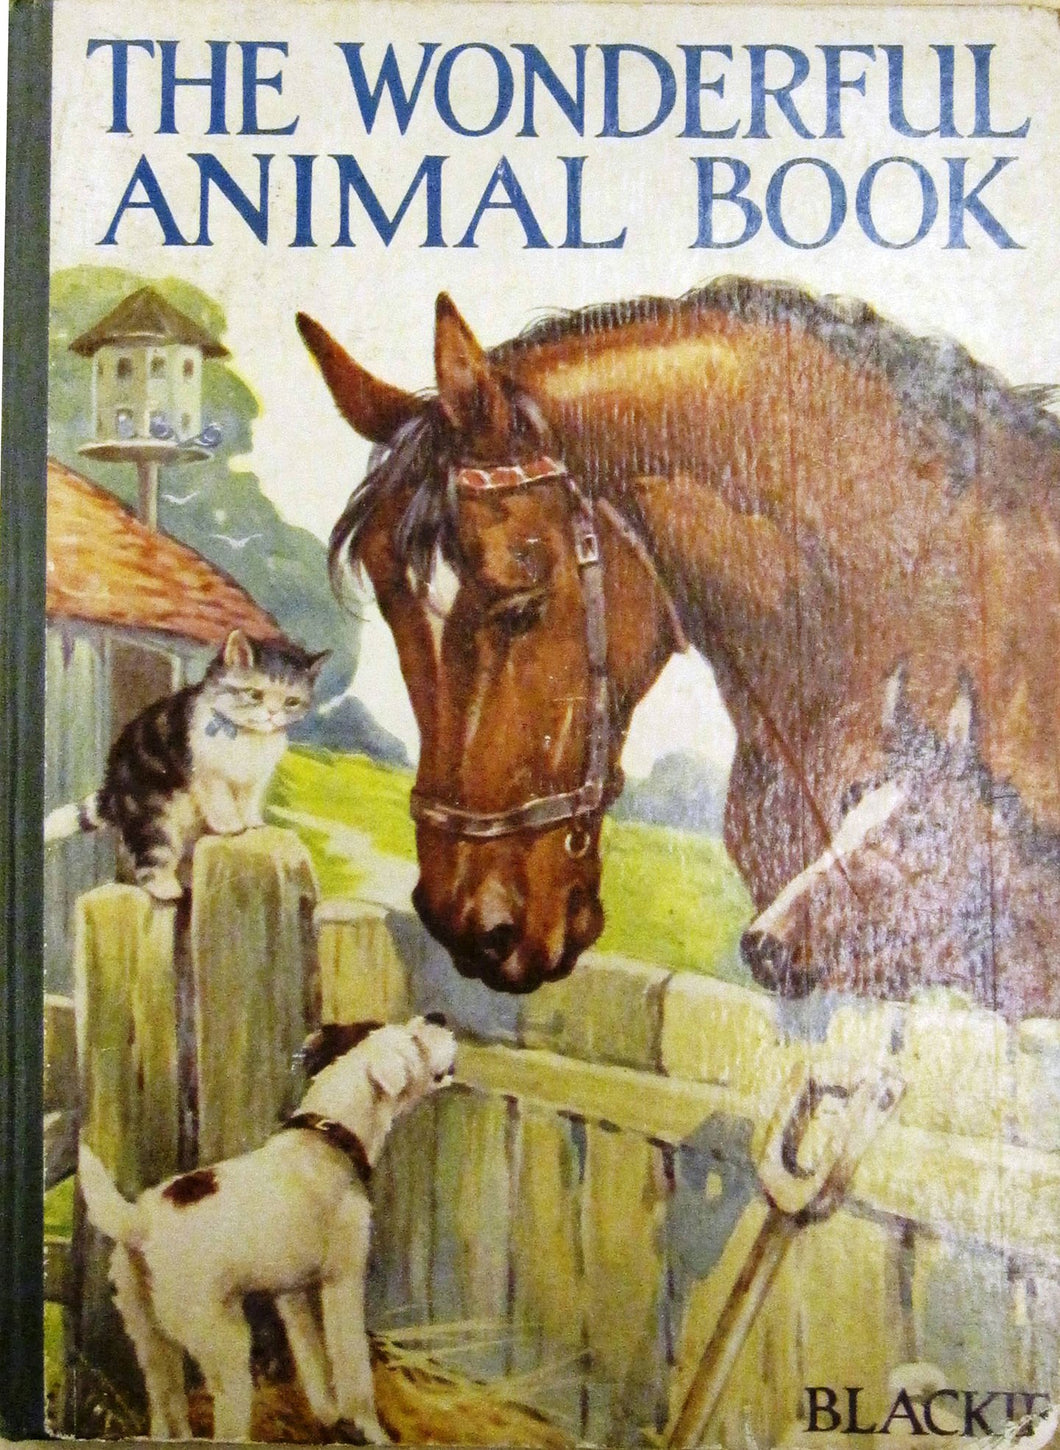 The Wonderful Animal Book